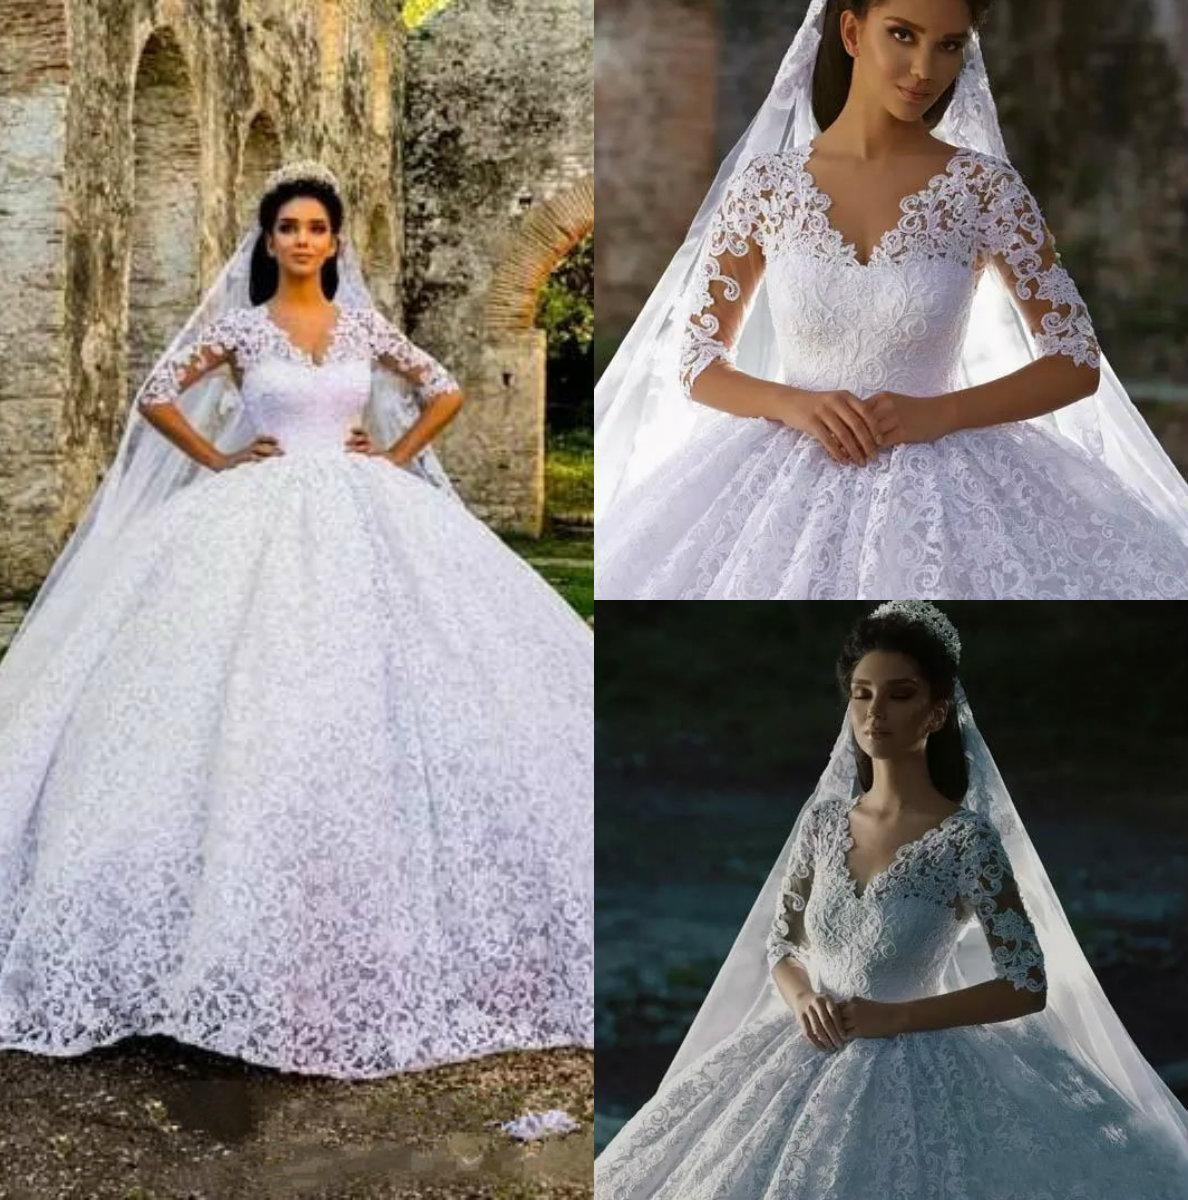 b2e15ac9f4e 2018 Cheap Arabic Luxury Ball Gown Wedding Dresses V Neck Half Sleeves Full  Lace Court Train Puffy Plus Size Formal Bridal Ball Gowns Wedding Ball Gowns  ...